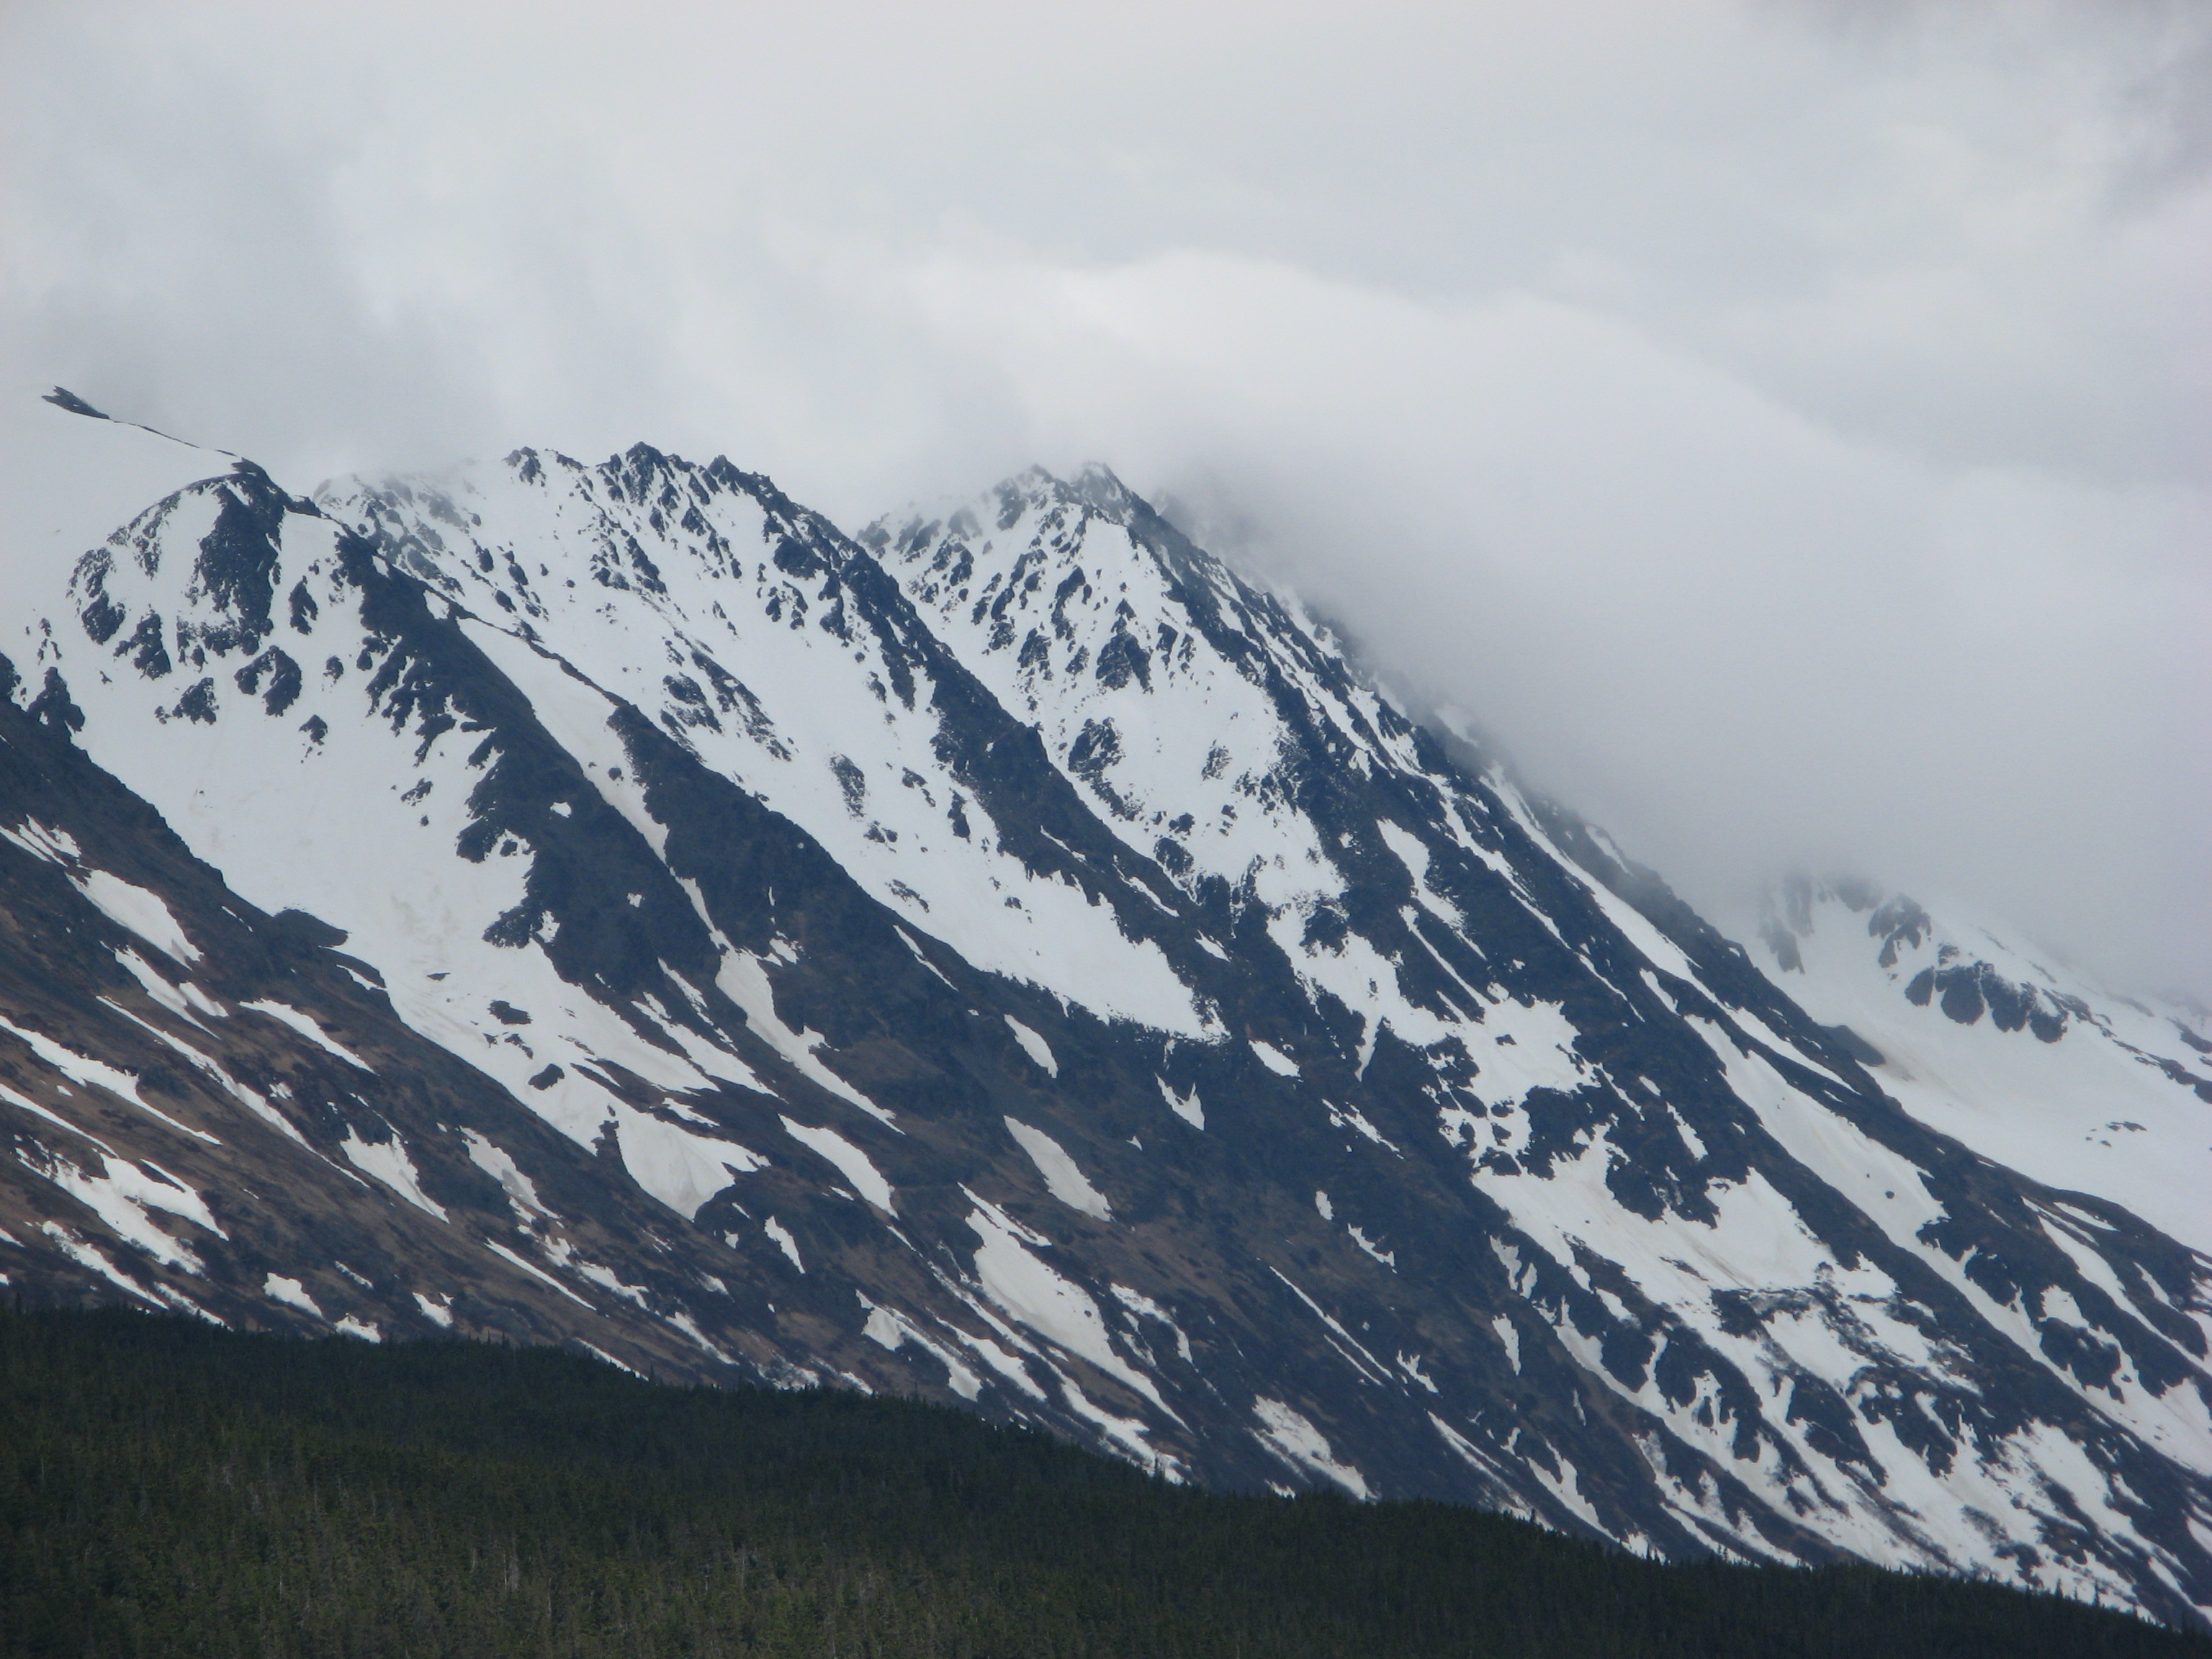 Mountains near Seward, Alaska.